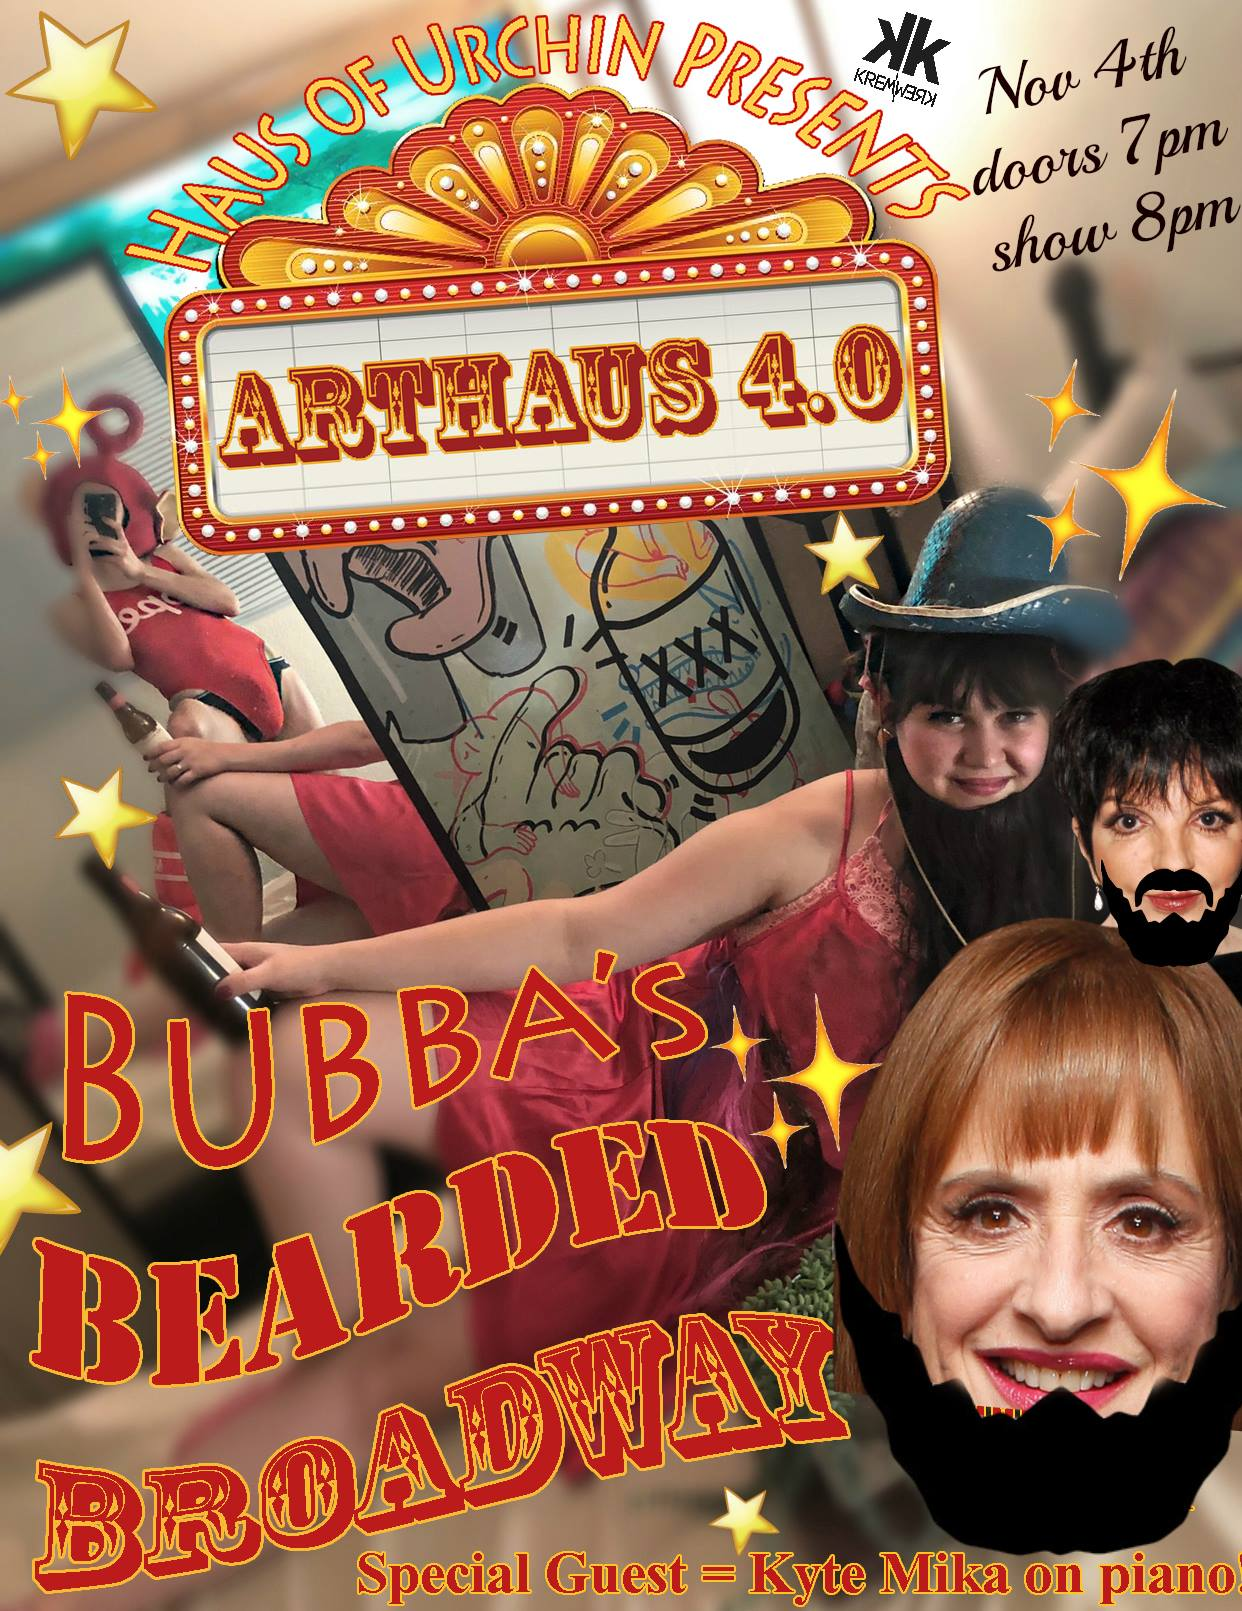 Art Haus 4.0: Bubba's Bearded Broadway Tickets | Kremwerk ...